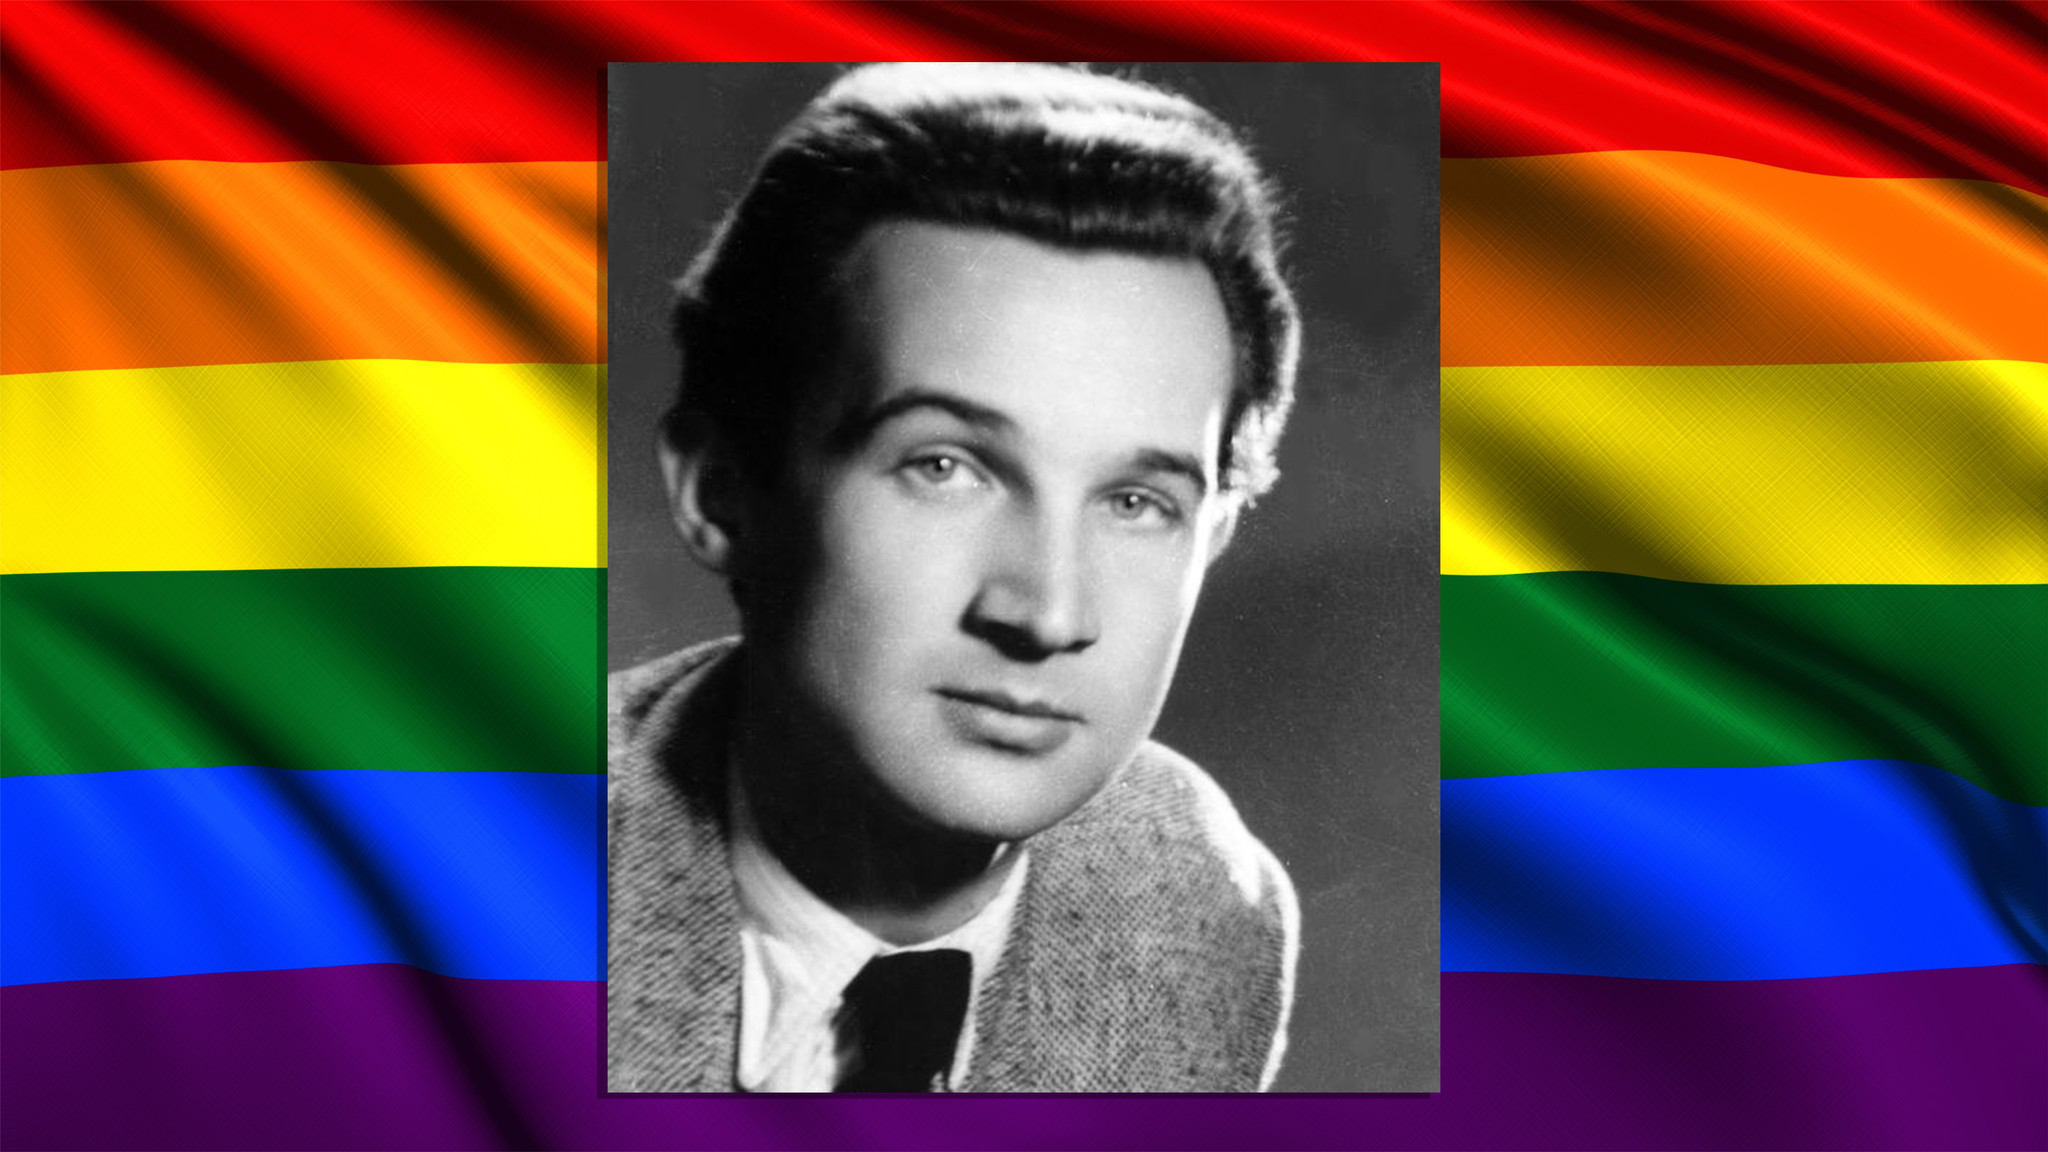 Polish actor comes out as gay on TV interview celebrating his 100th birthday